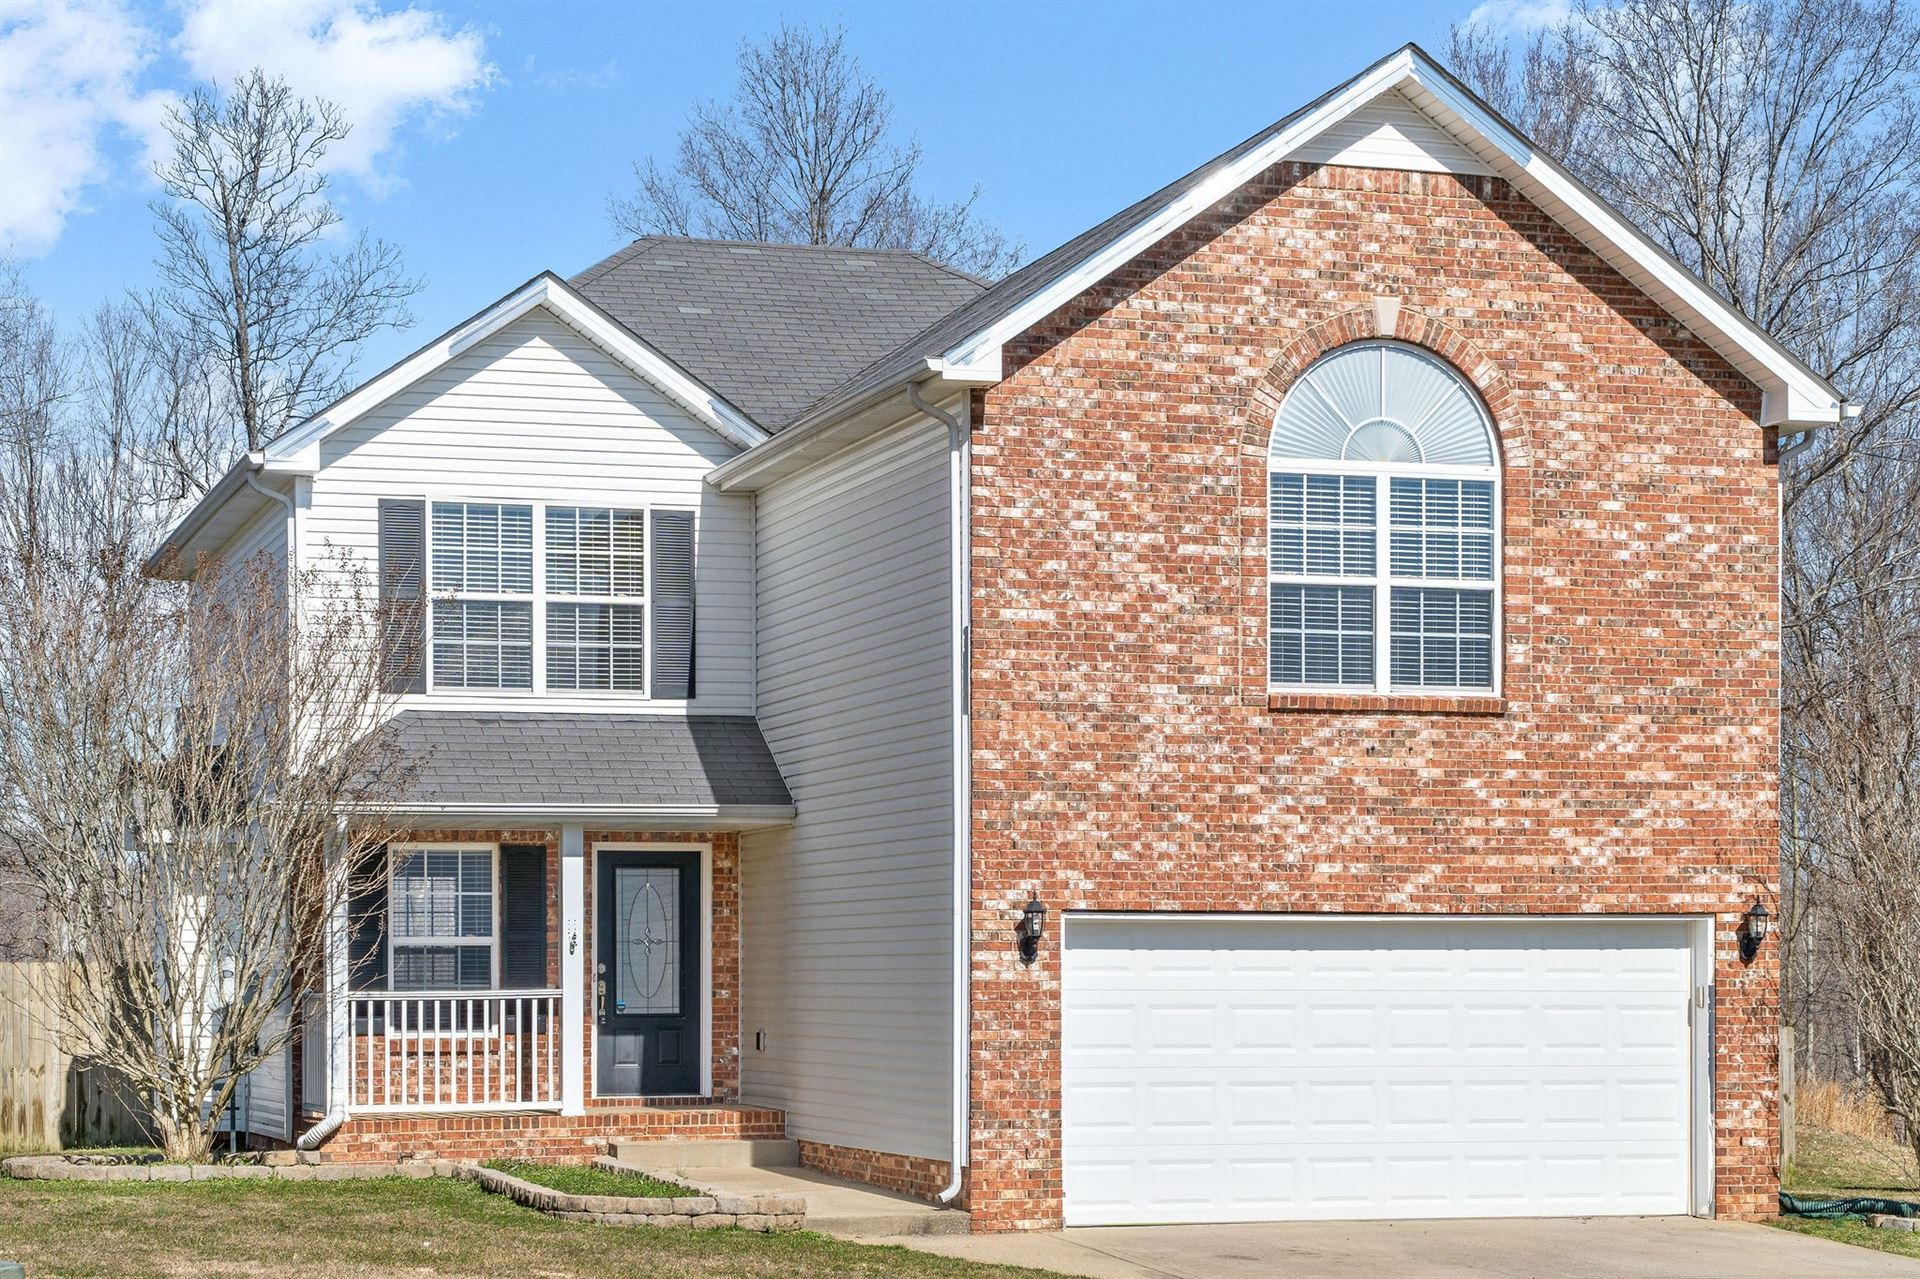 2901 Sharpie Dr, Clarksville, TN 37040 - MLS#: 2232748